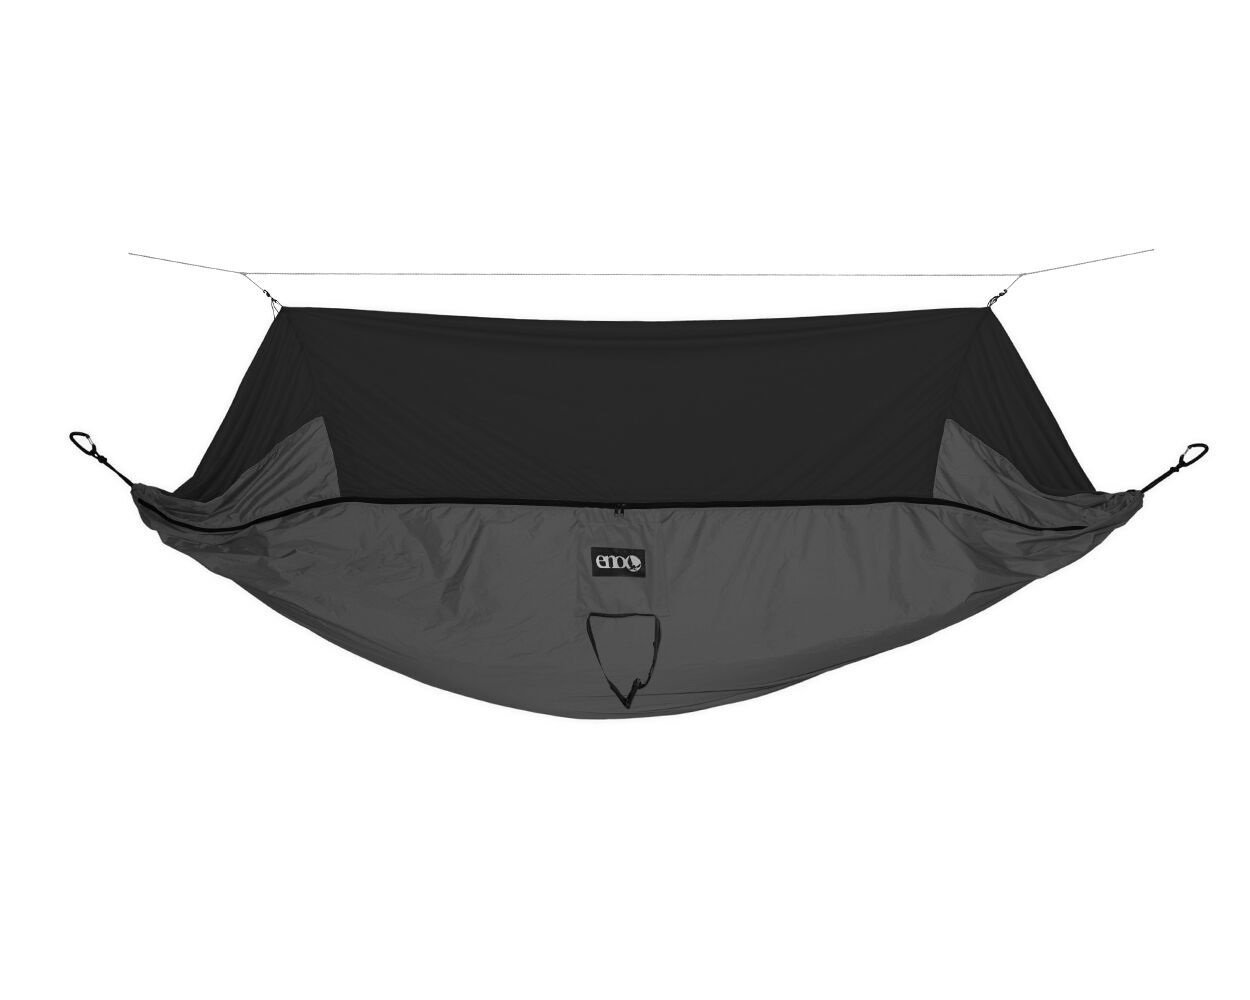 ENO - Eagles Nest Outfitters JungleNest Hammock, Includes Hammock and Bug Net, Grey by ENO